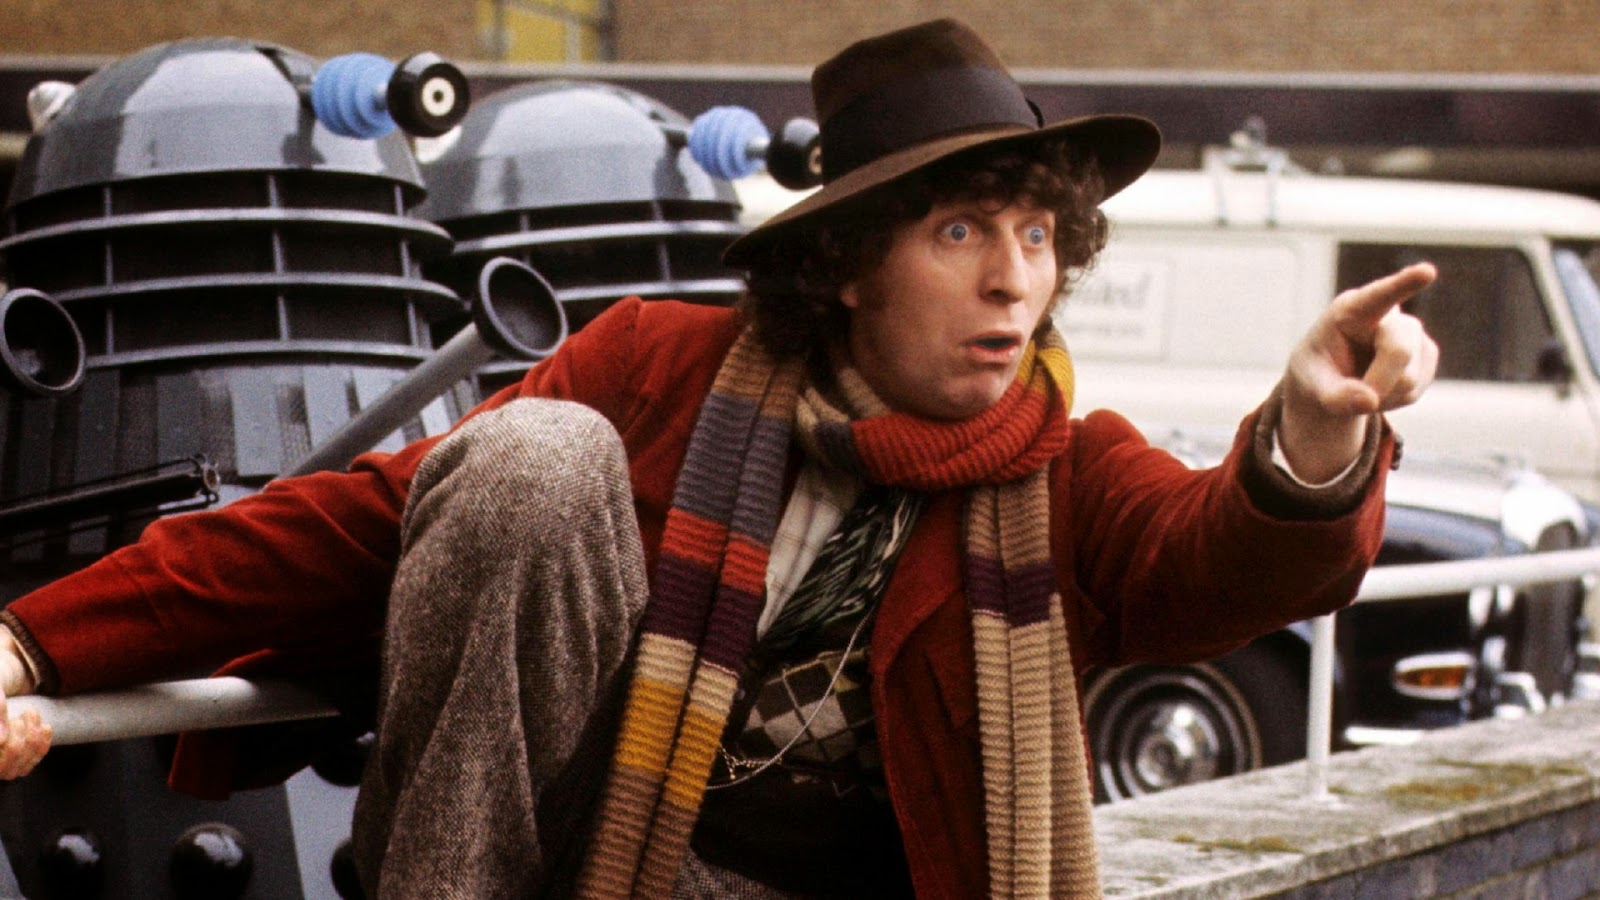 a509e7fd8082 That this should prove so difficult is in many ways revealing. First, we  should start with what this isn't, which is an account of Tom Baker as the  ...